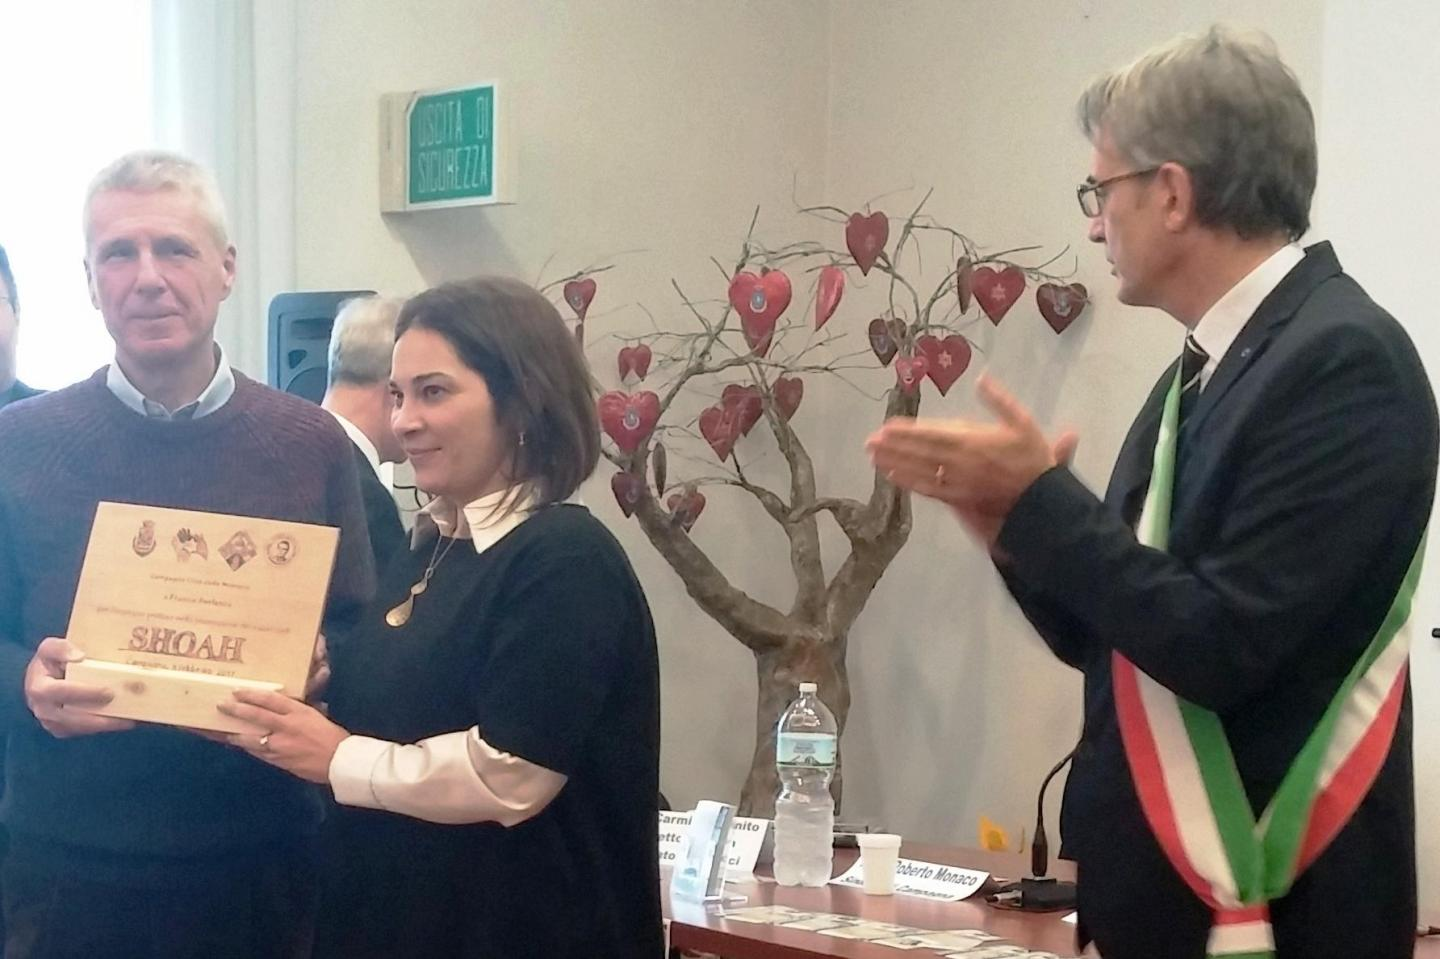 The cerimony. From the left: Franco Perlasca, Professor Rossella De Luca and the Mayor of Campagna Roberto Monaco.